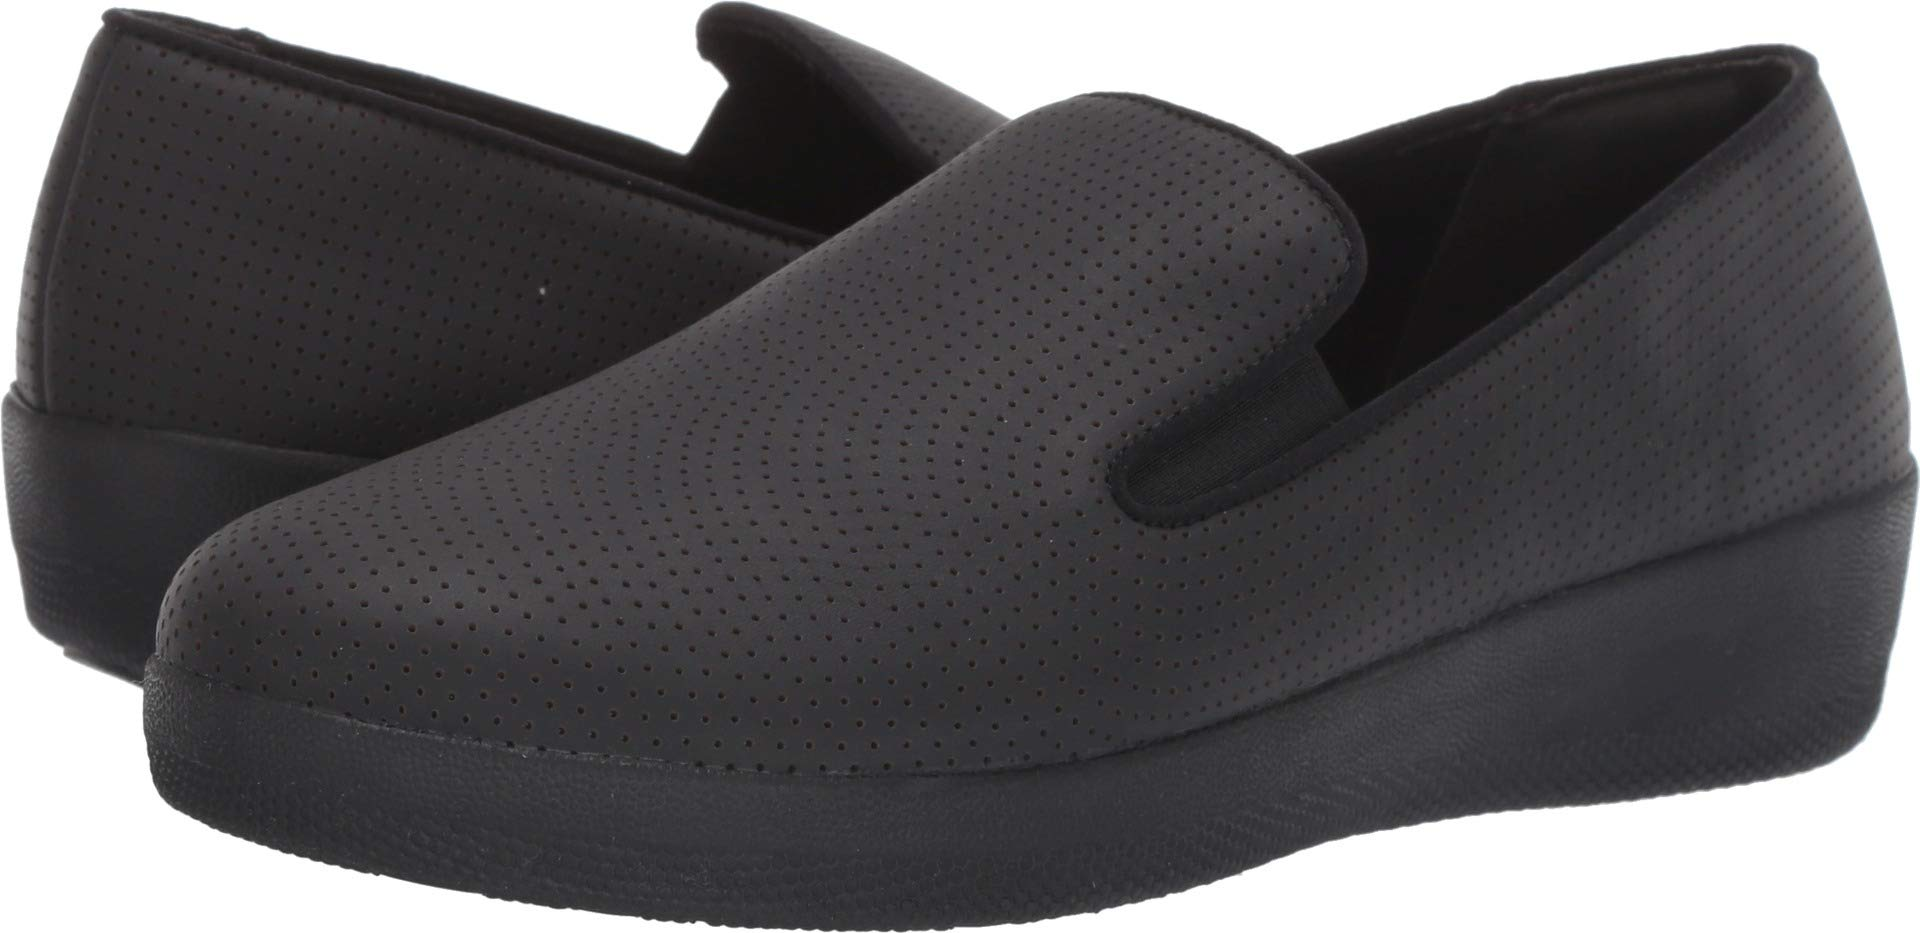 FITFLOP Women's Superskate Perforated Skate Shoe, Black, 6 M US by FITFLOP